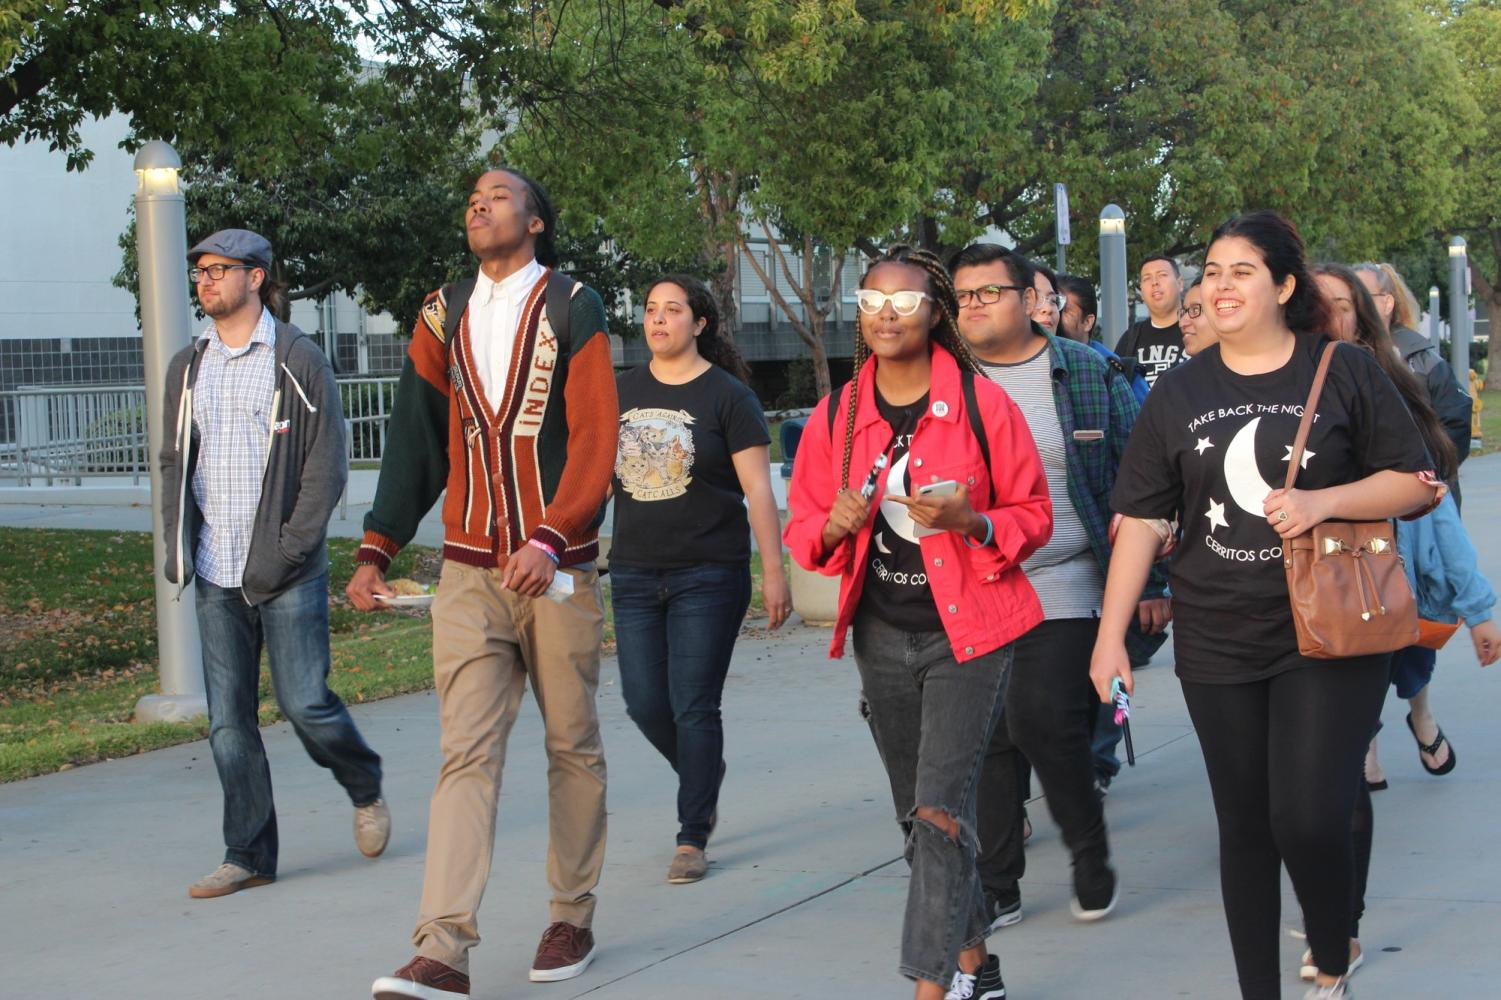 Cerritos College students and professors march around campus for Take Back the Night 2018.